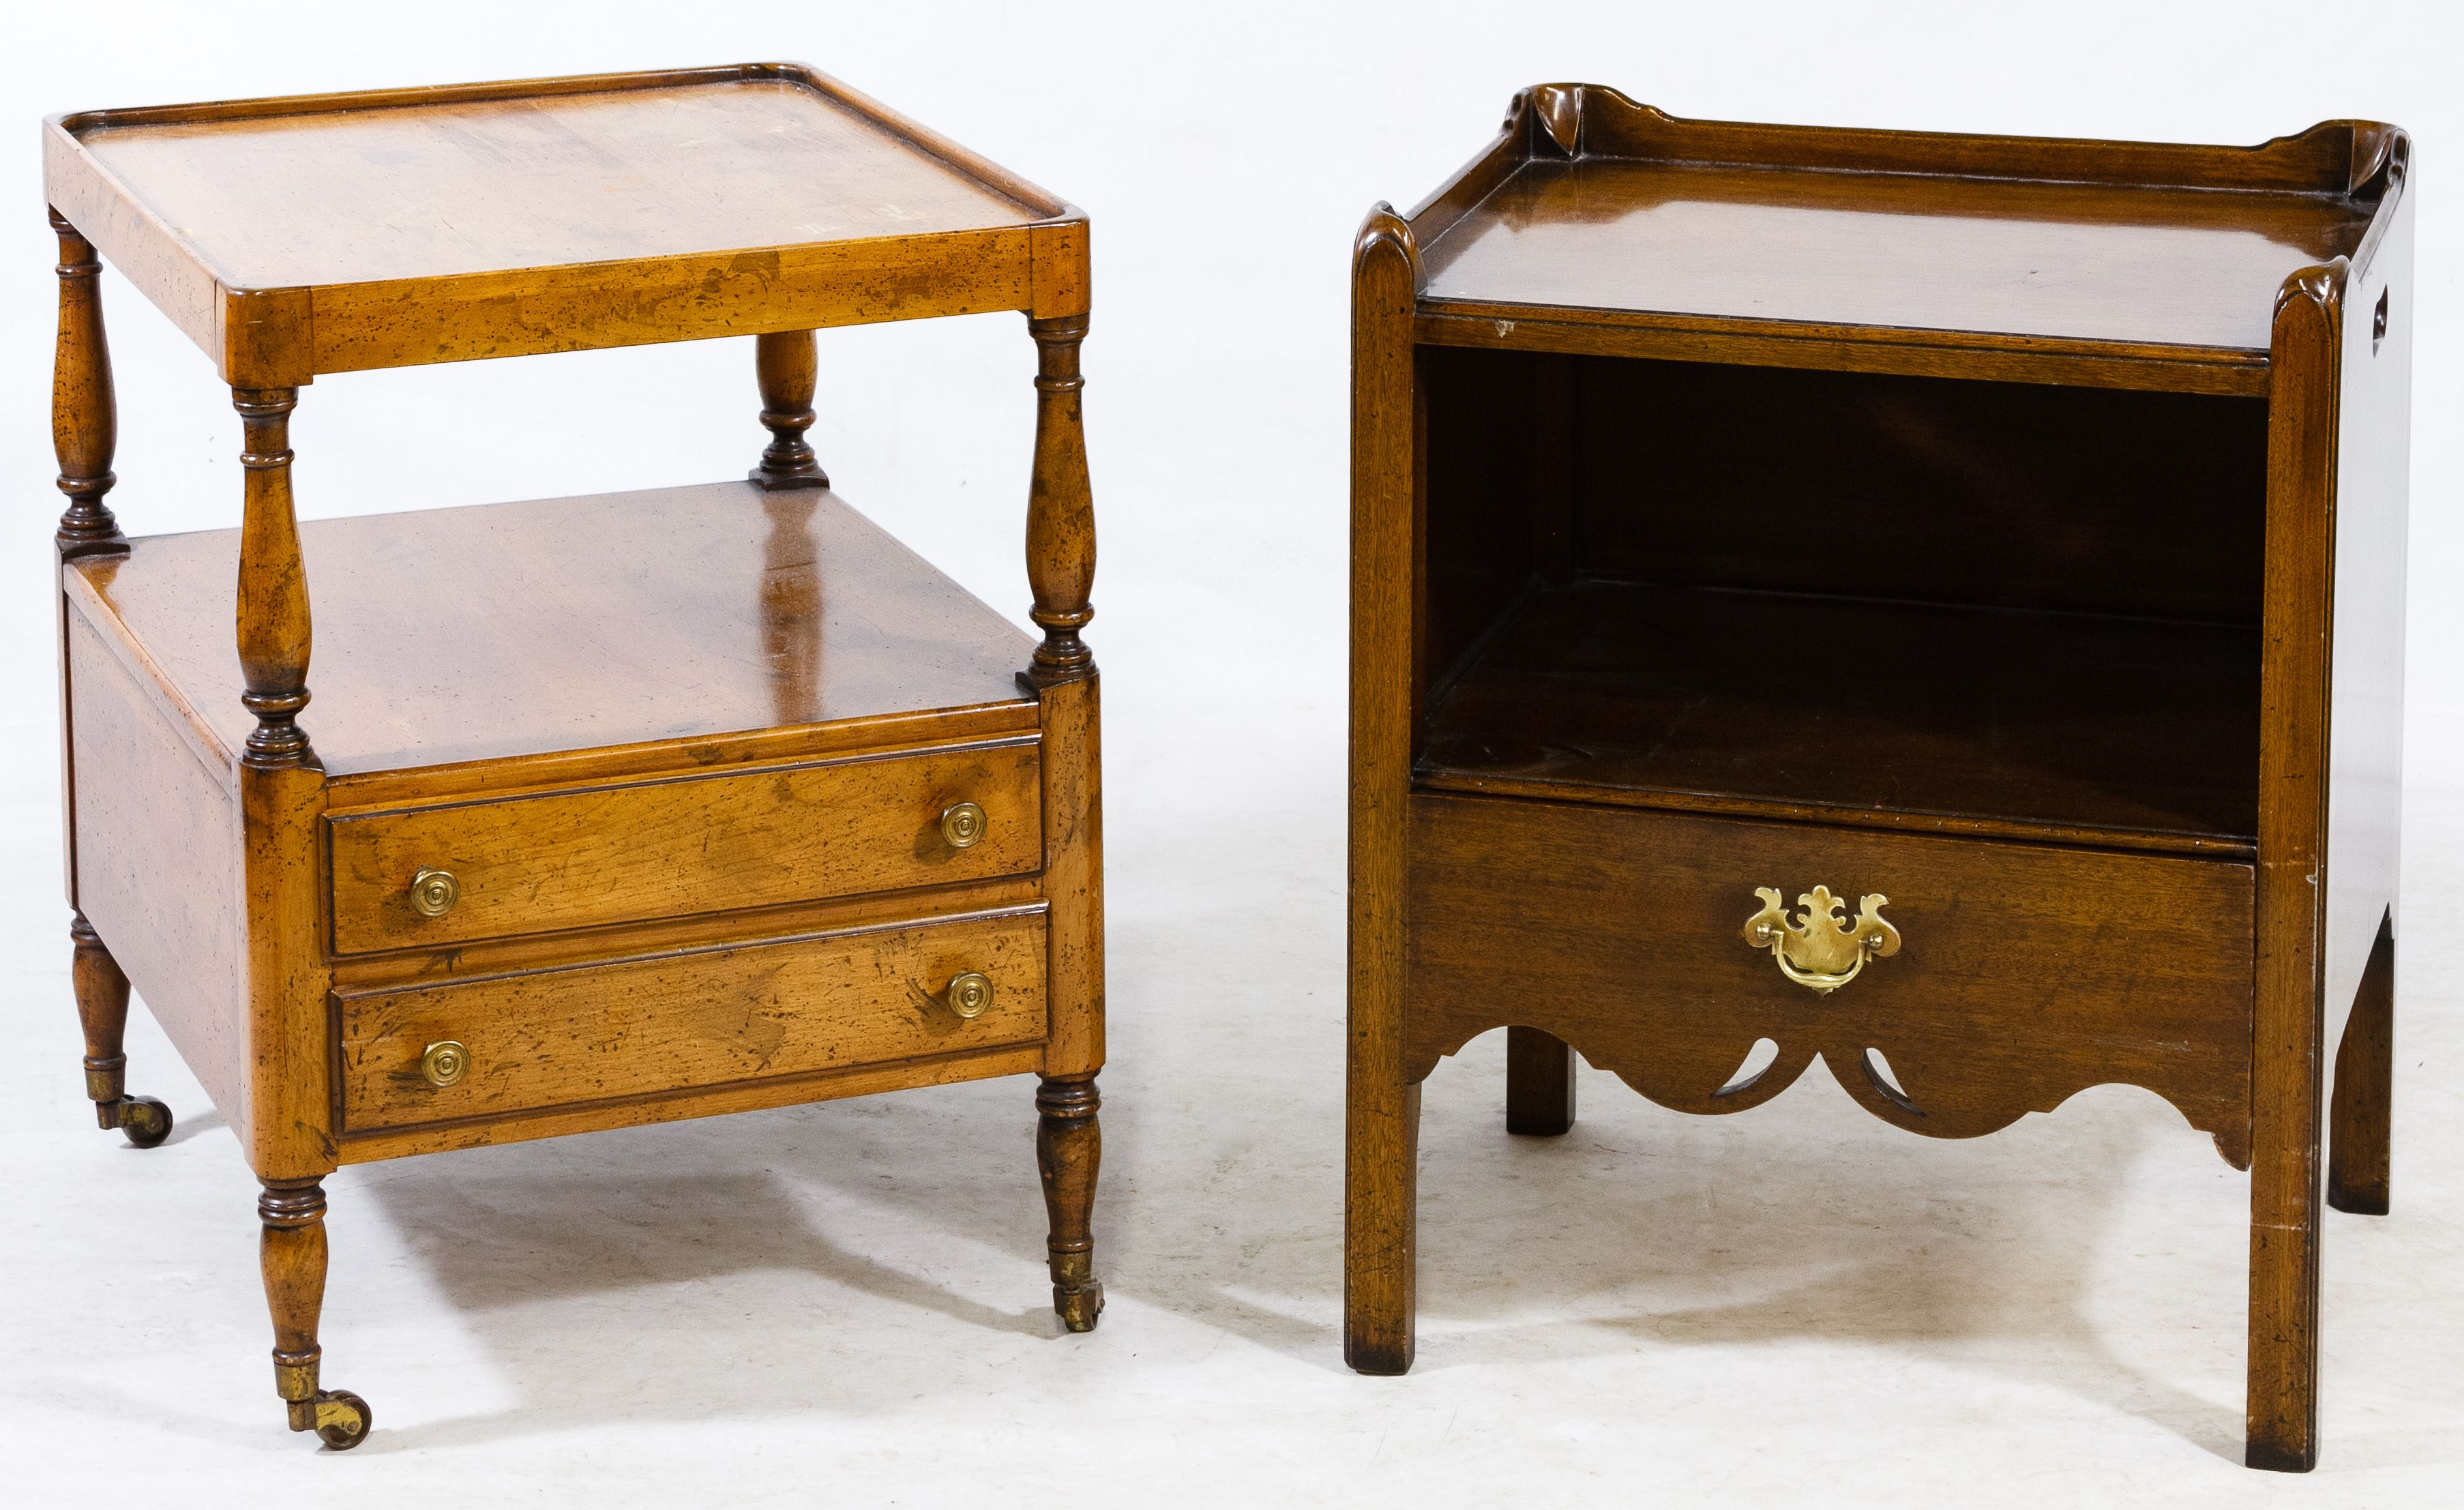 Lot 693 English Walnut Night Stand By Caledonian Having A Single Drawer Together With An Unmarked Fruitwood Rolling T Nightstand Rolling Table English Walnut